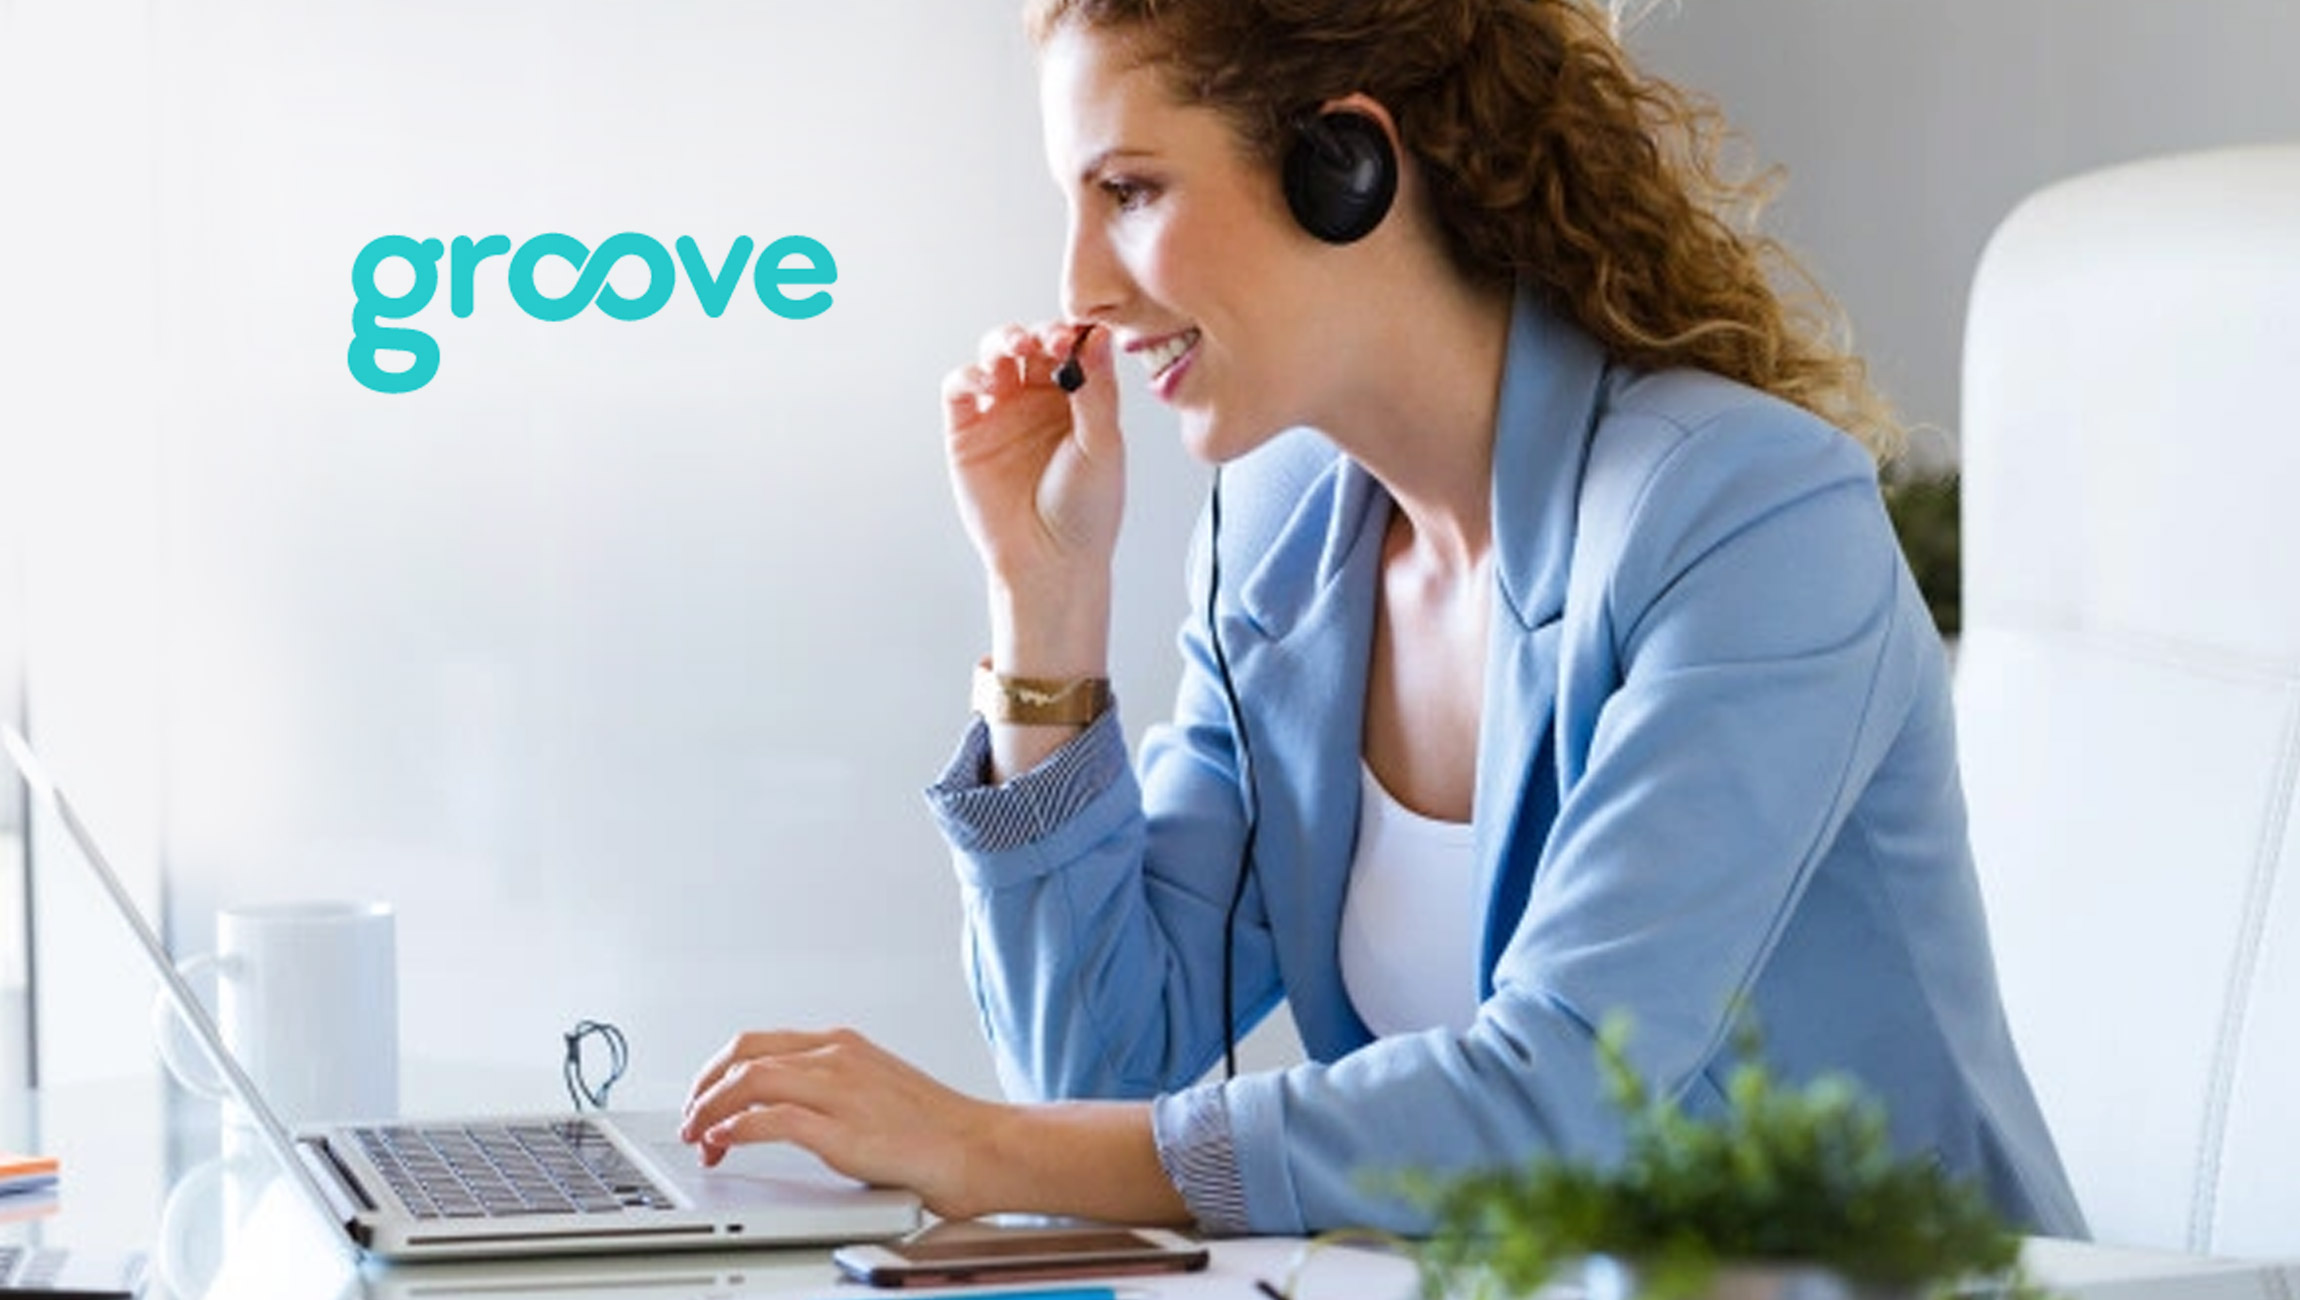 Groove-Launches-Auto-Contact-Capture_-Enabling-Users-to-Automatically-Identify-and-Add-New-Business-Contacts-with-Salesforce (1)